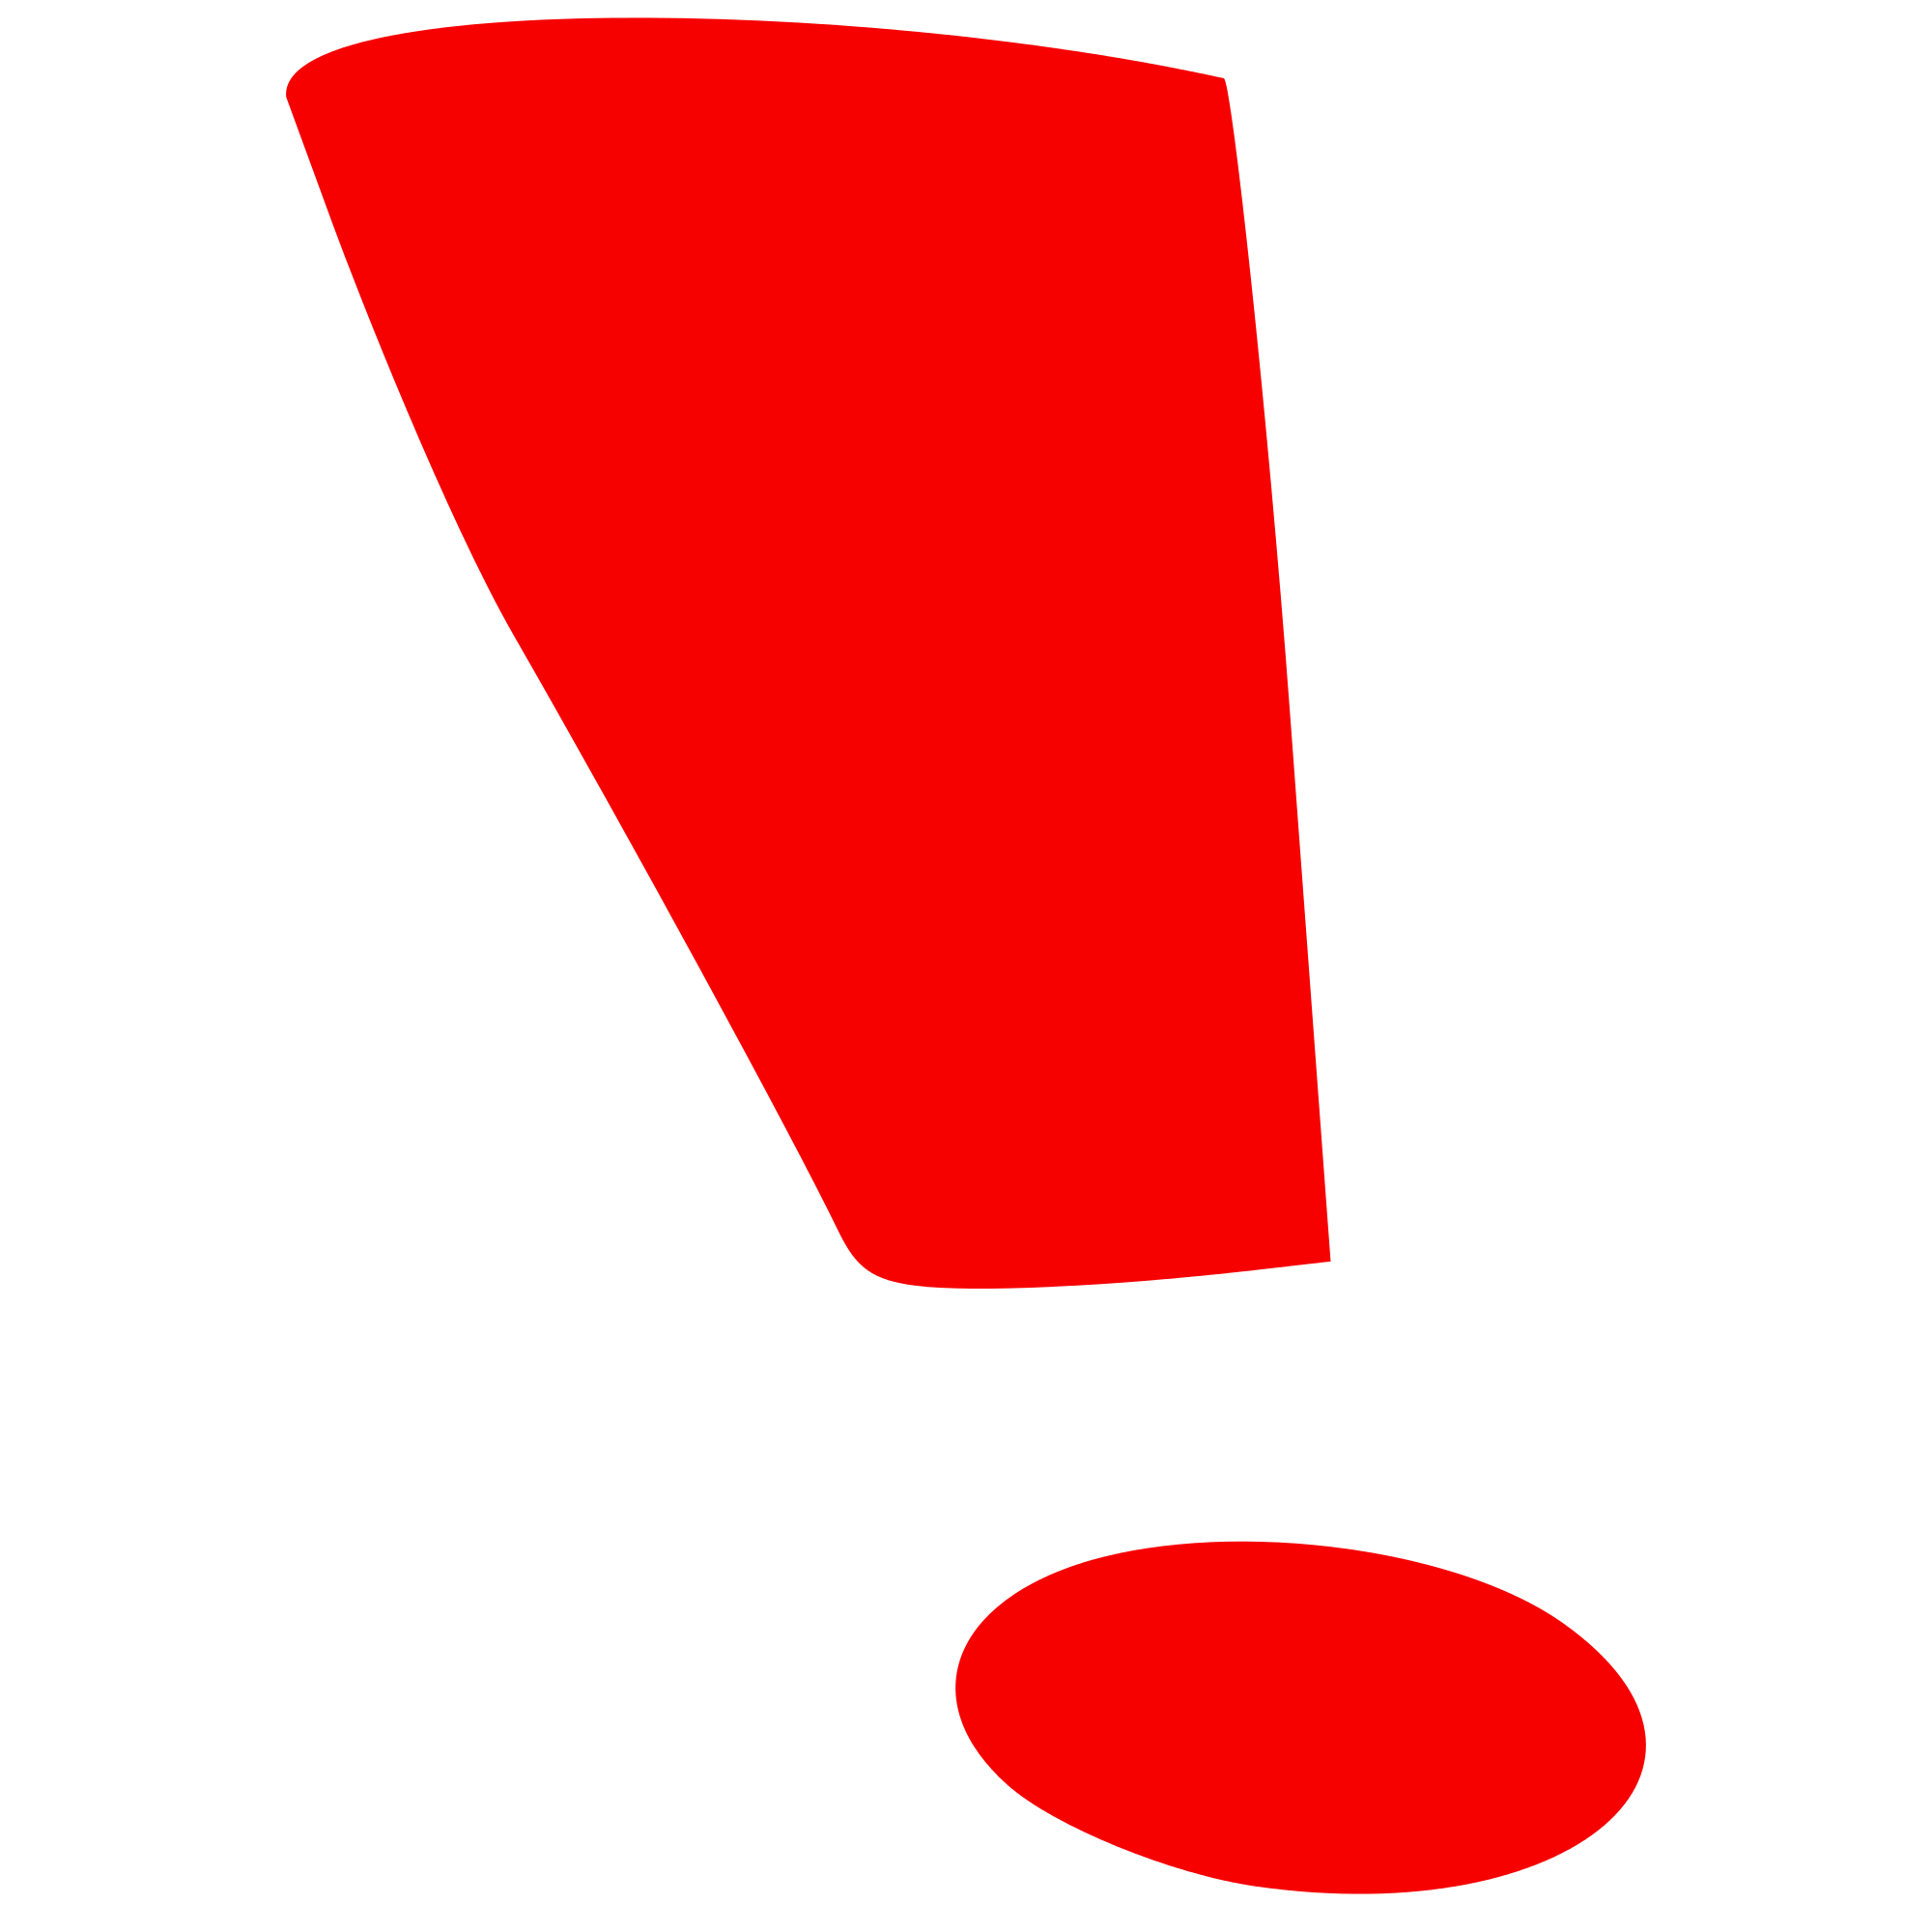 Exclamation mark PNG